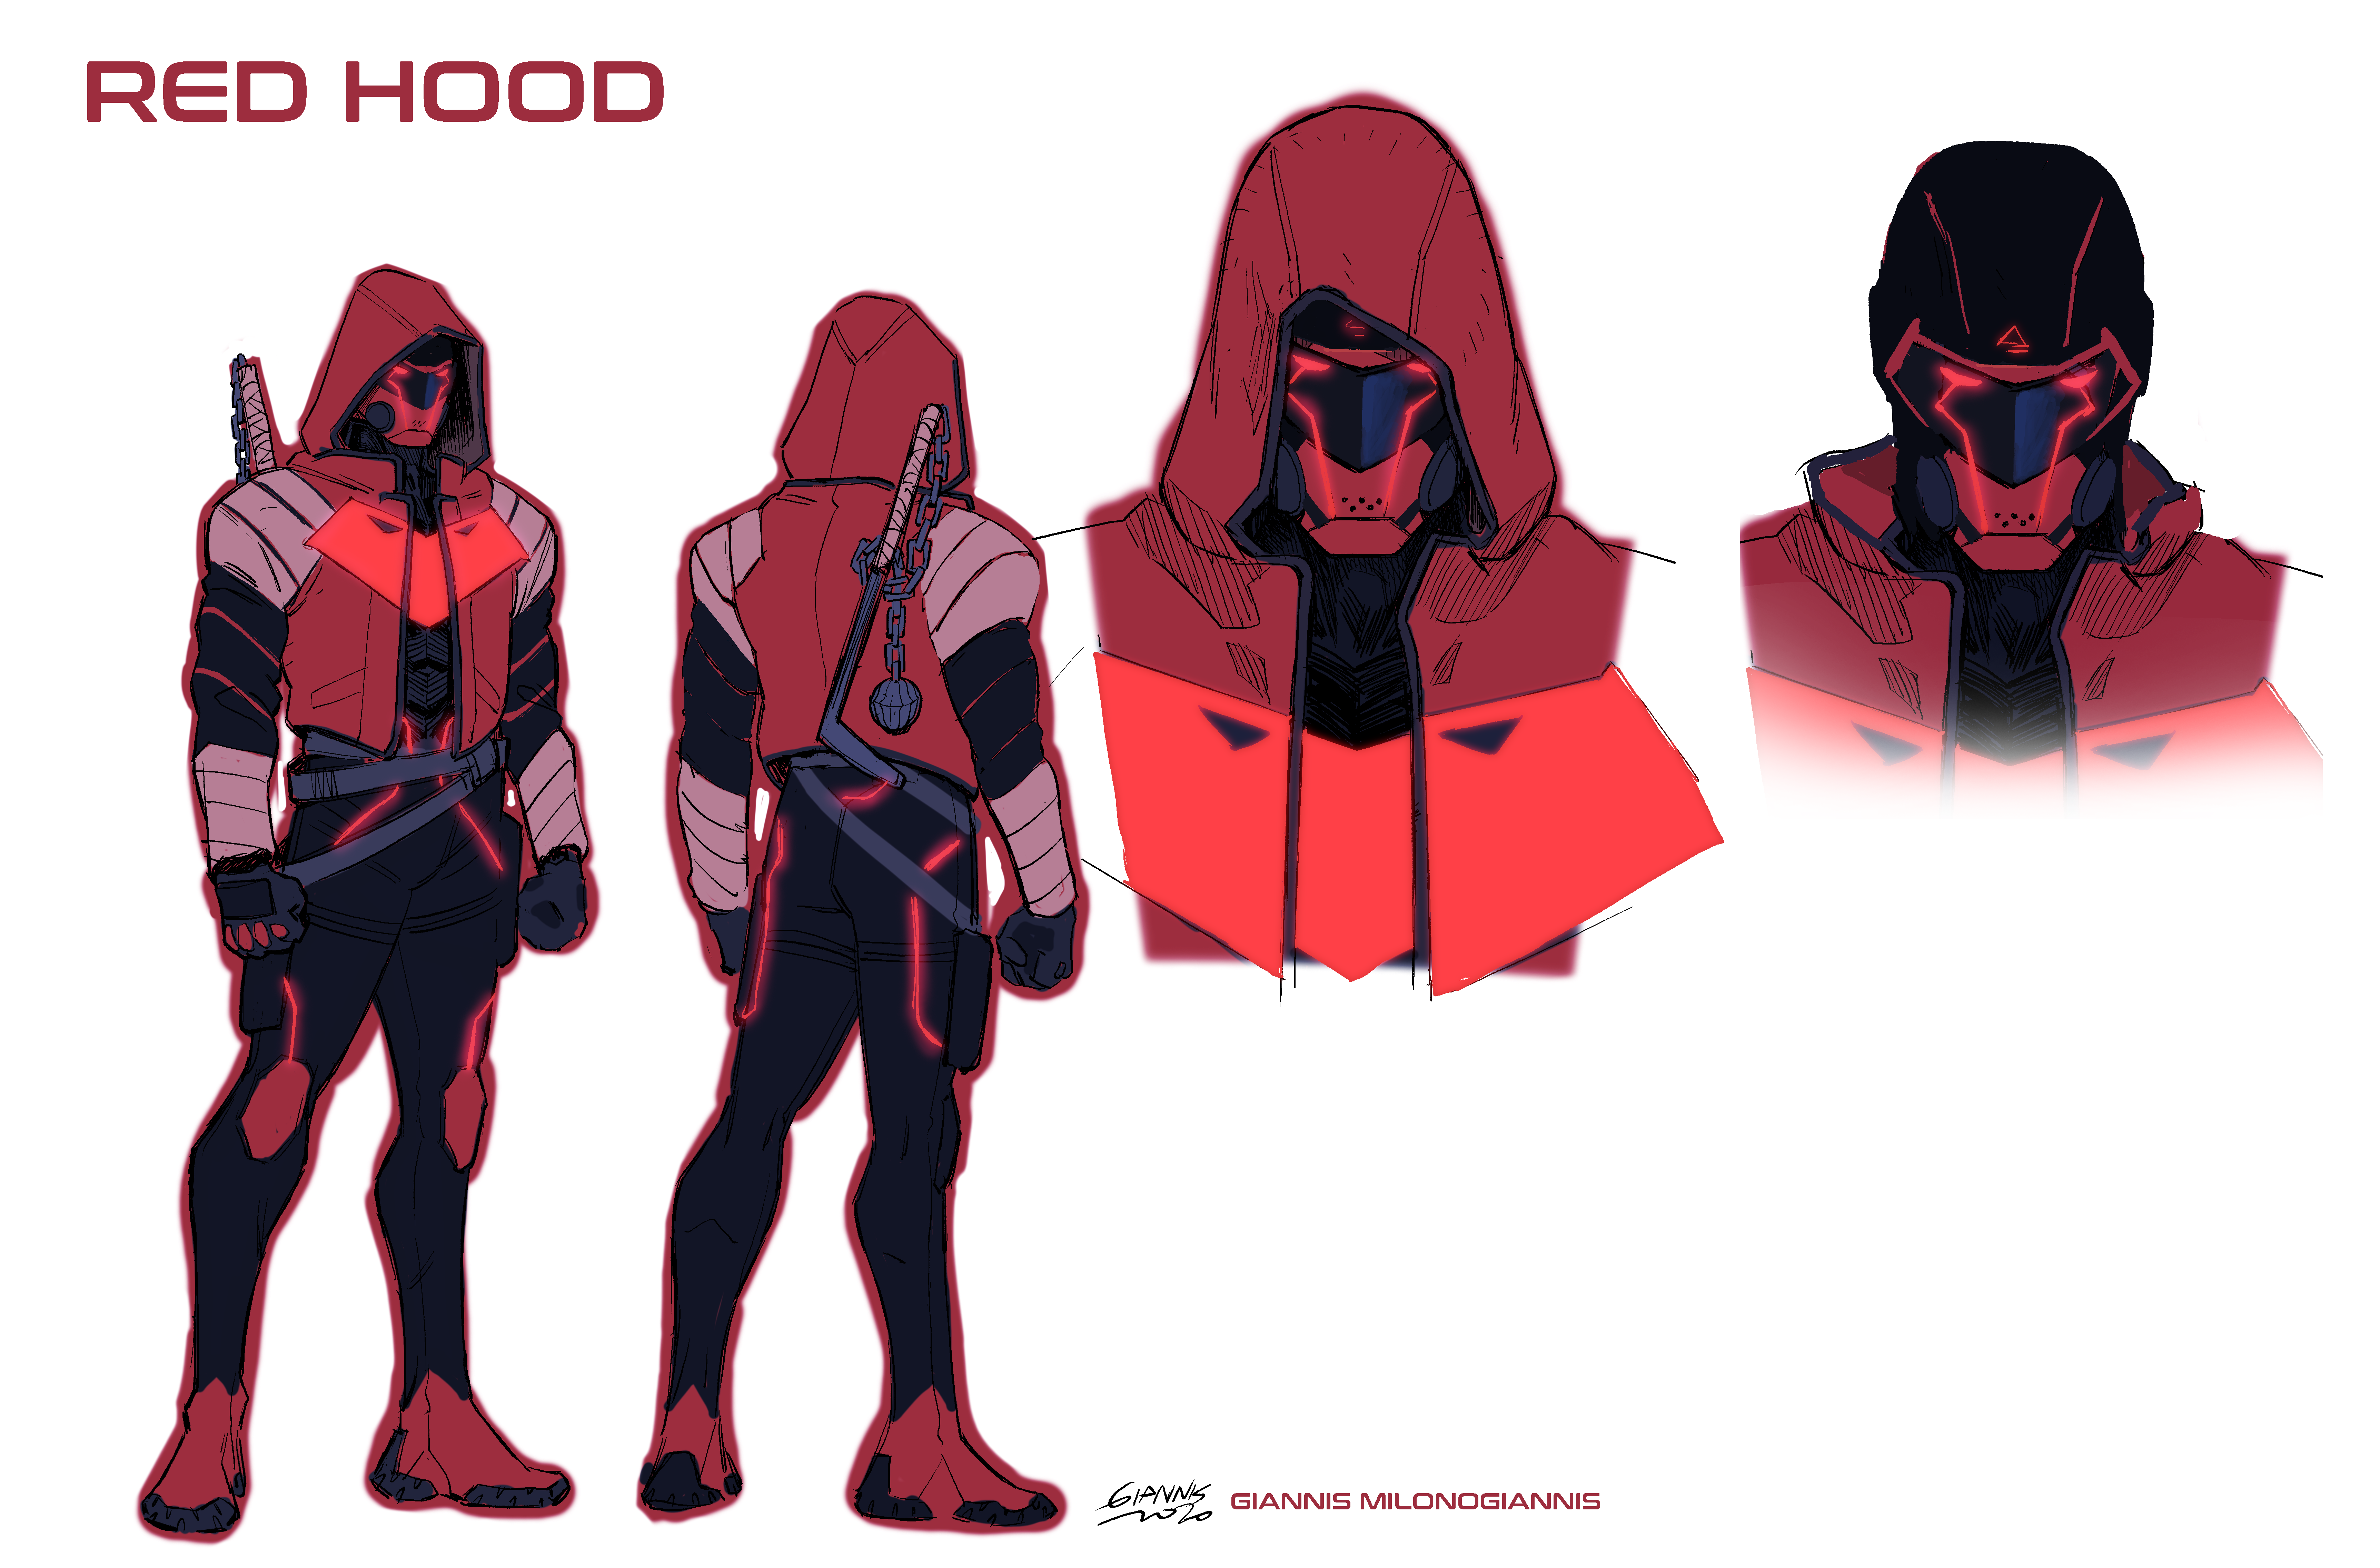 Future State Red Hood concept art by Giannis Milonogiannis